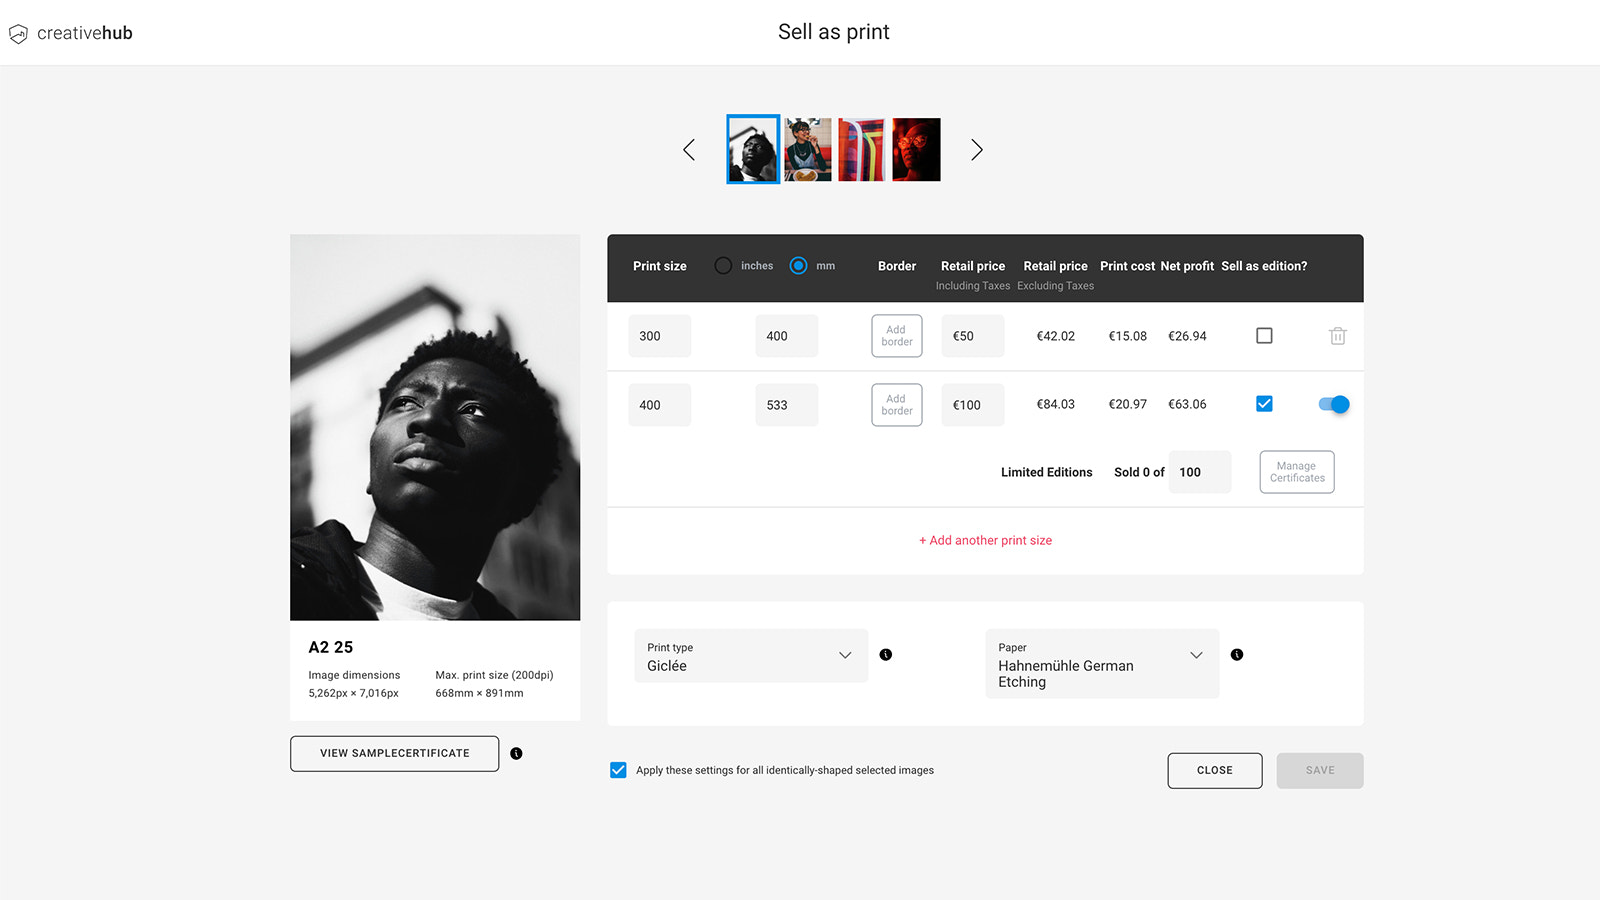 Upload high res files to creativehub